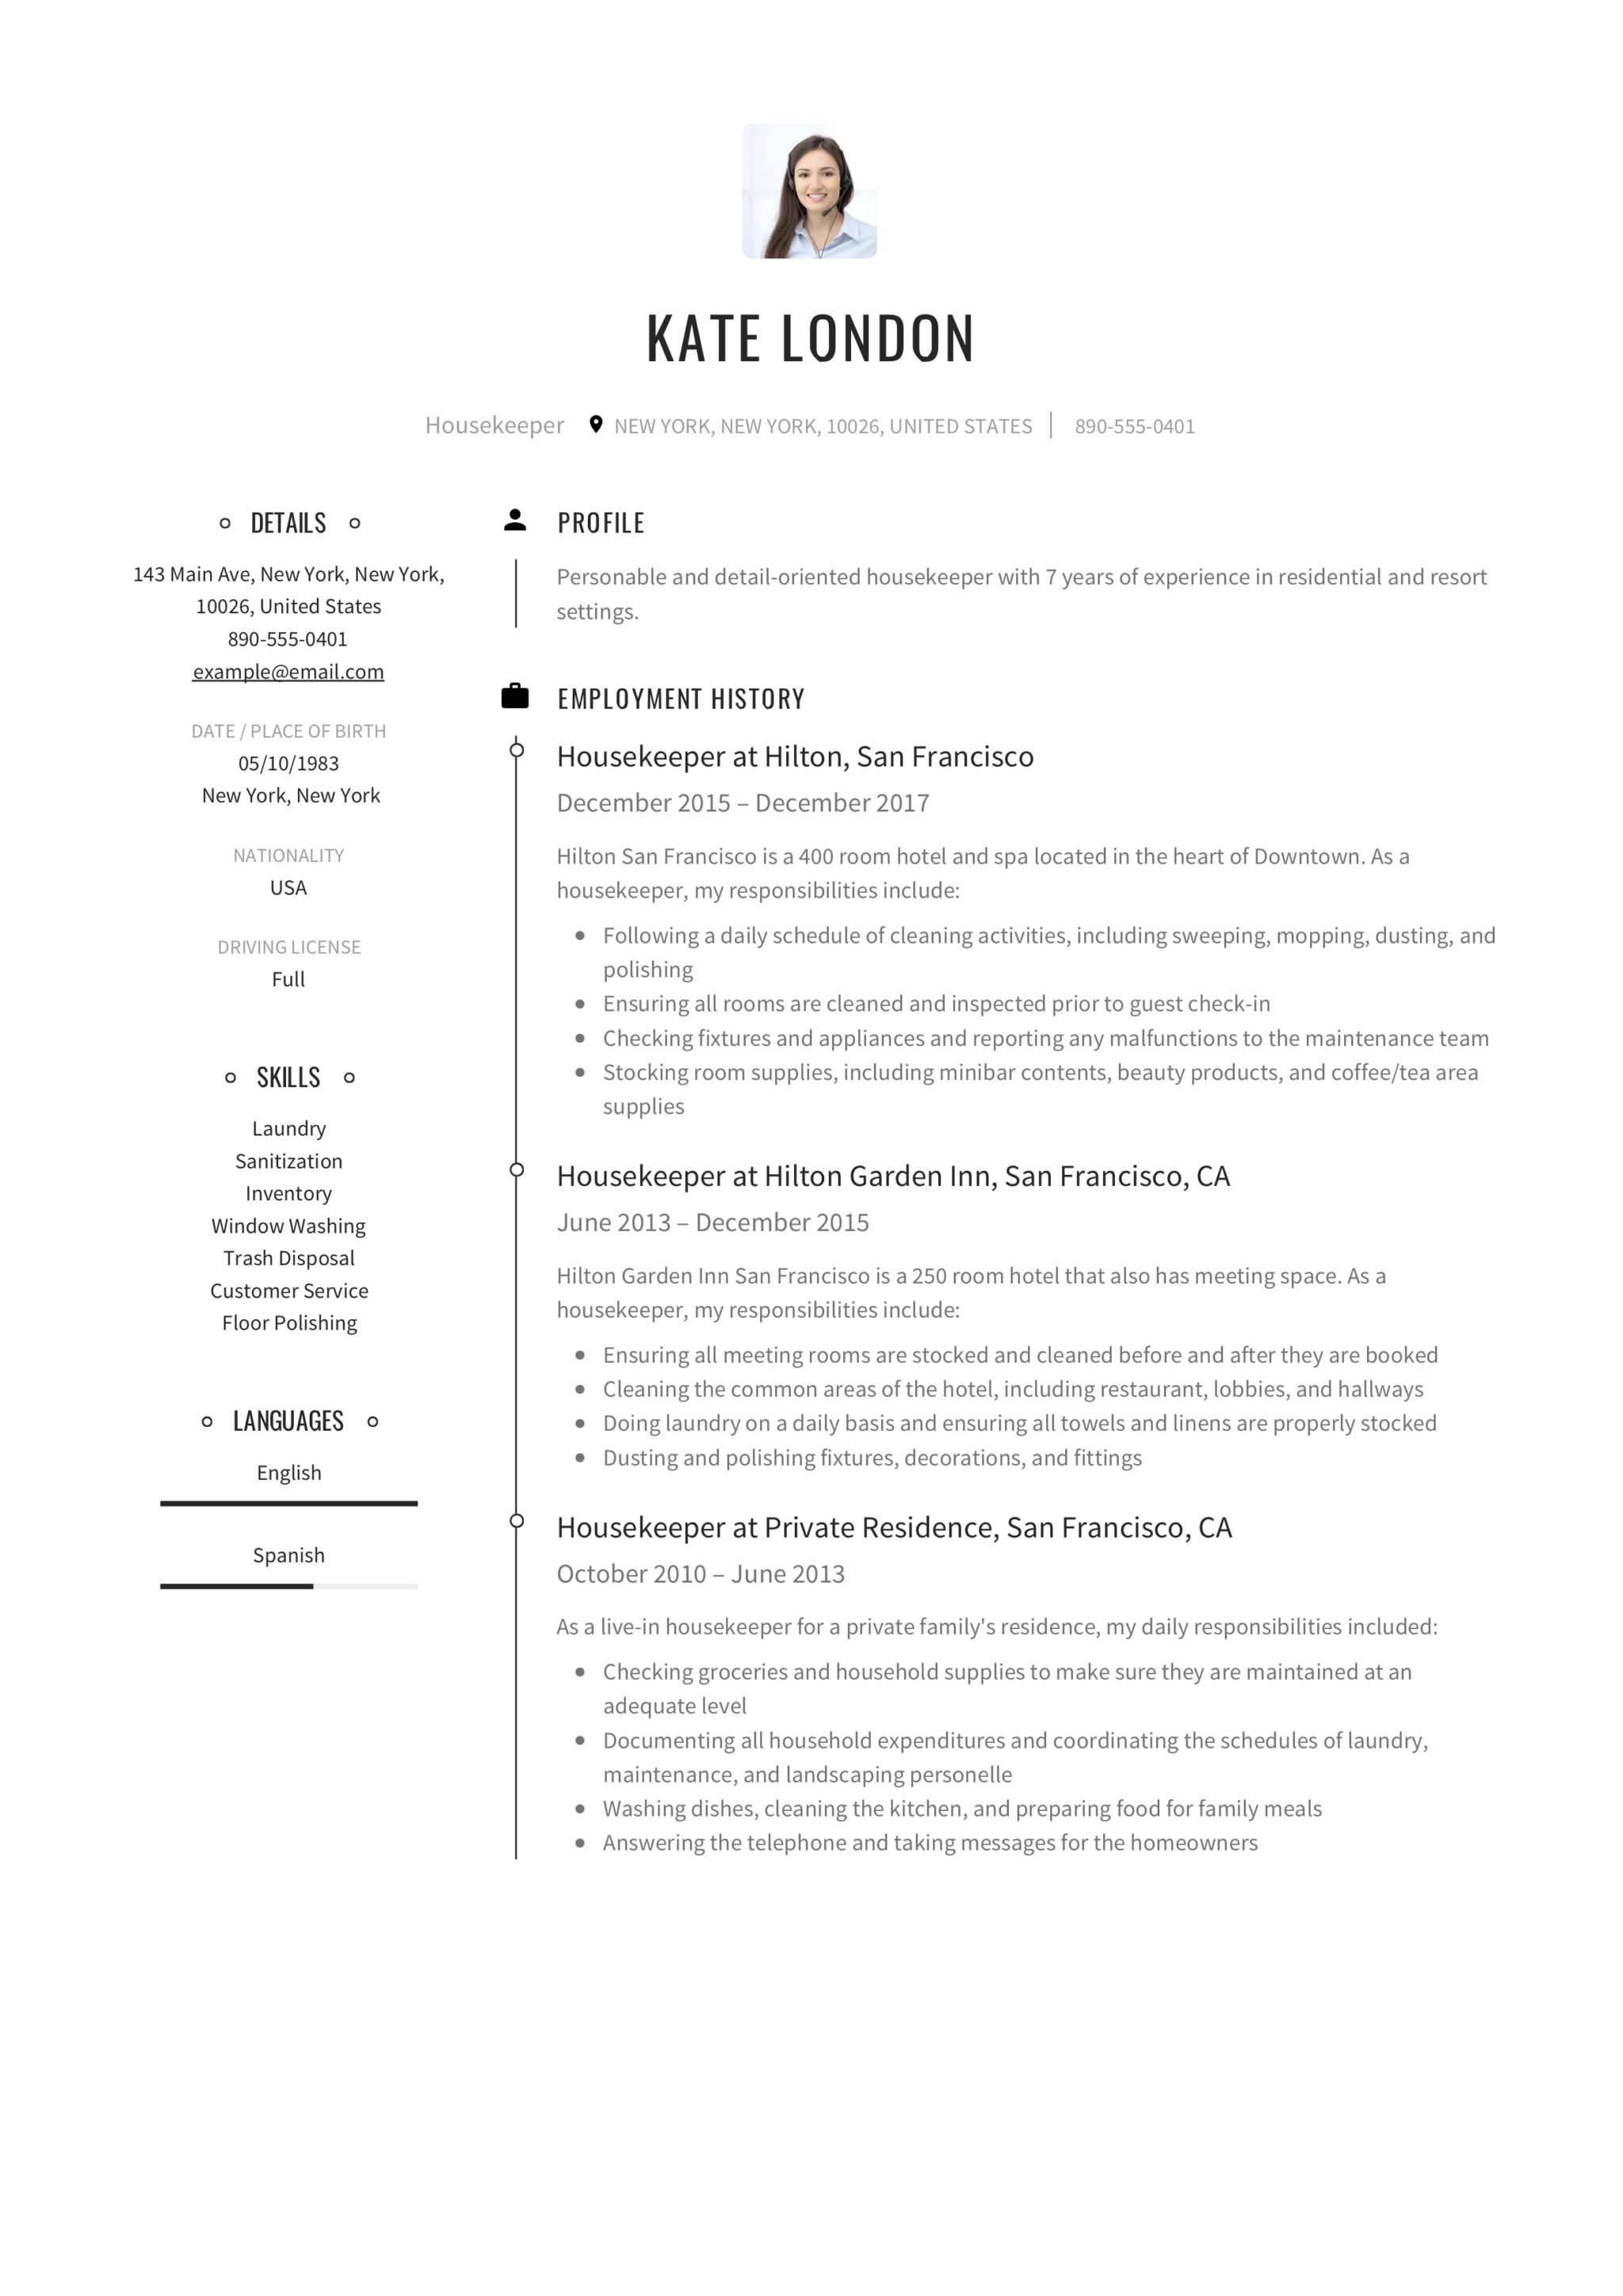 Resume Guide Housekpeer 12 Resume Samples Pdf 2020